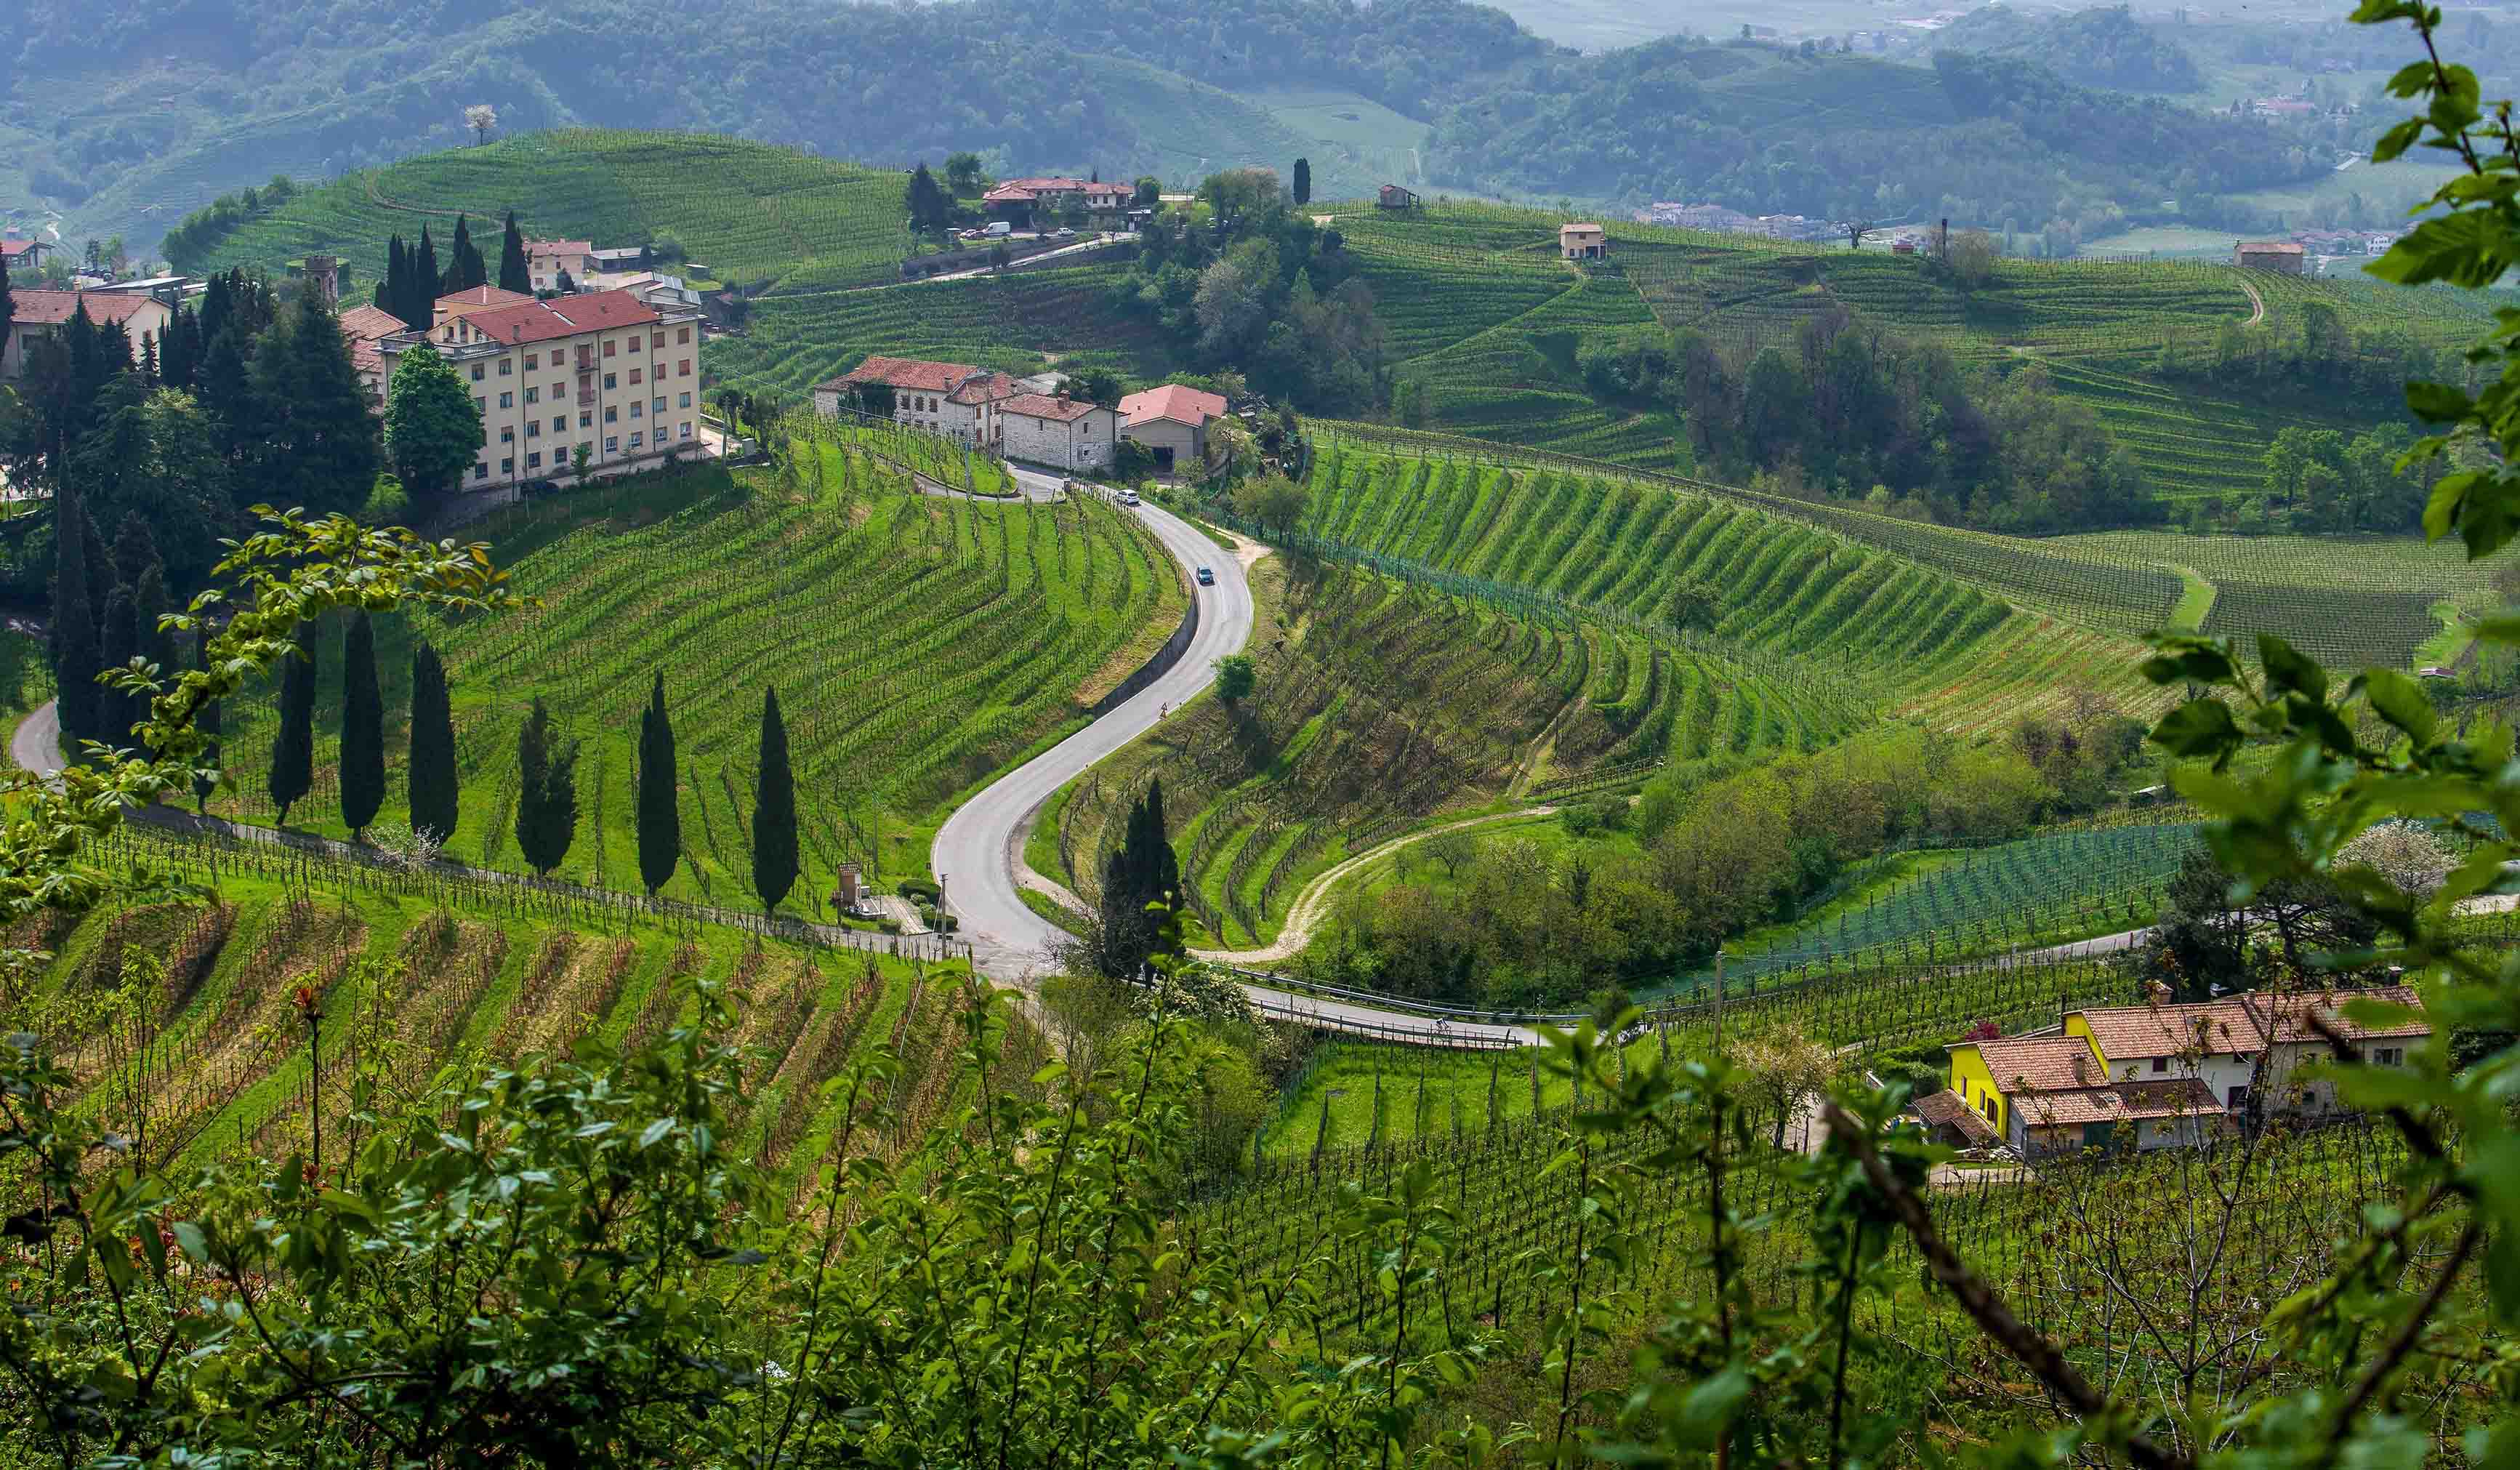 The Prosecco Hills